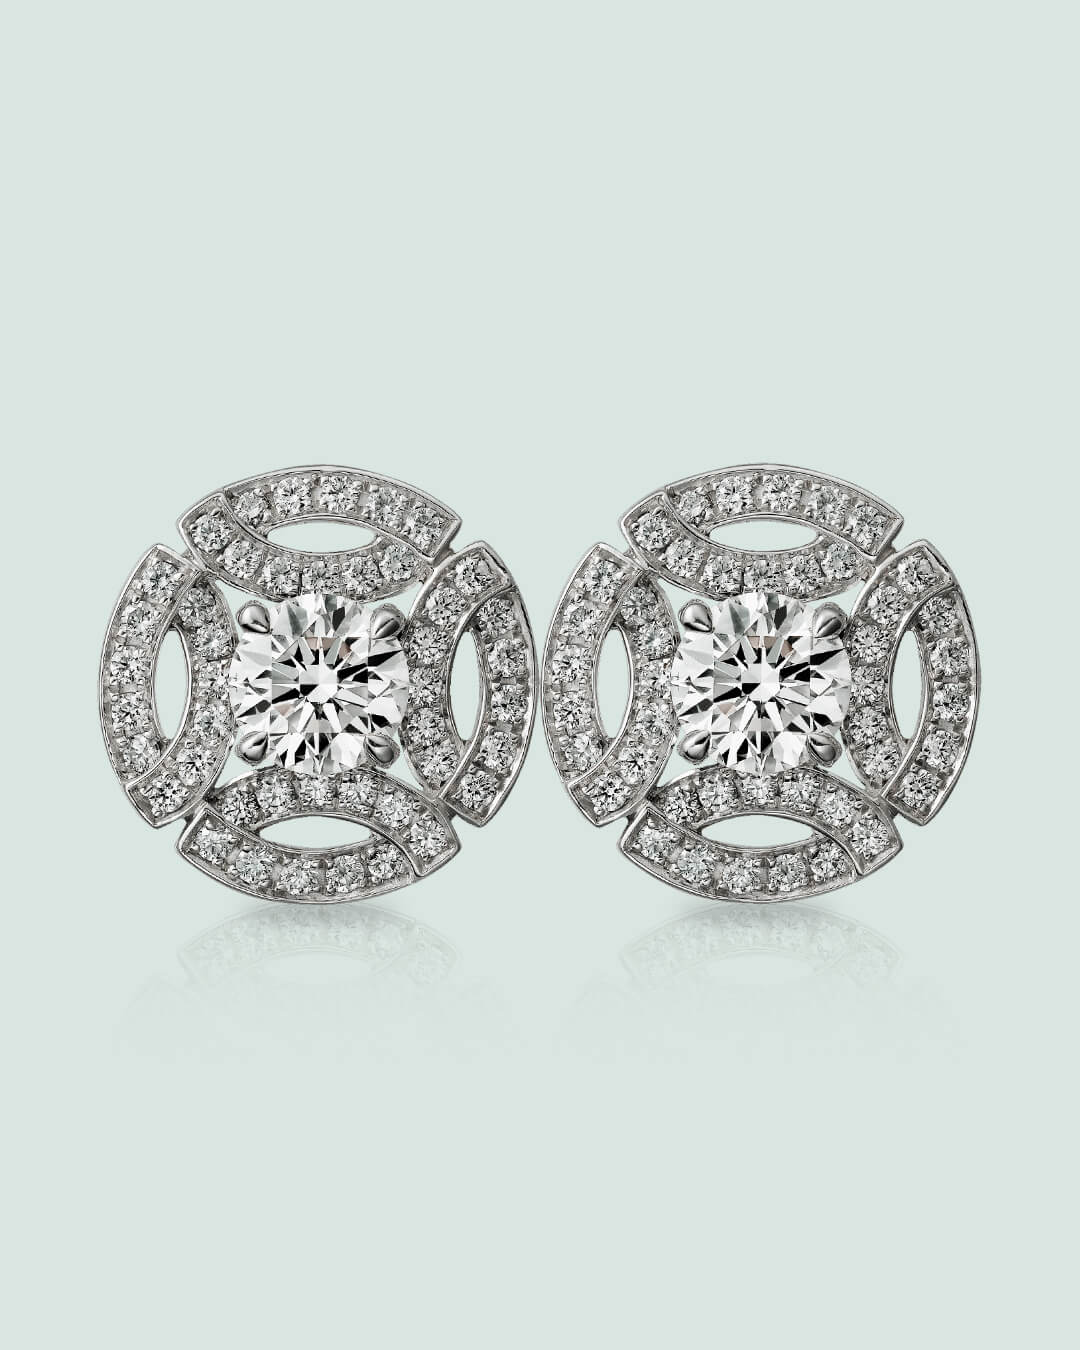 Galanterie earring by Cartier